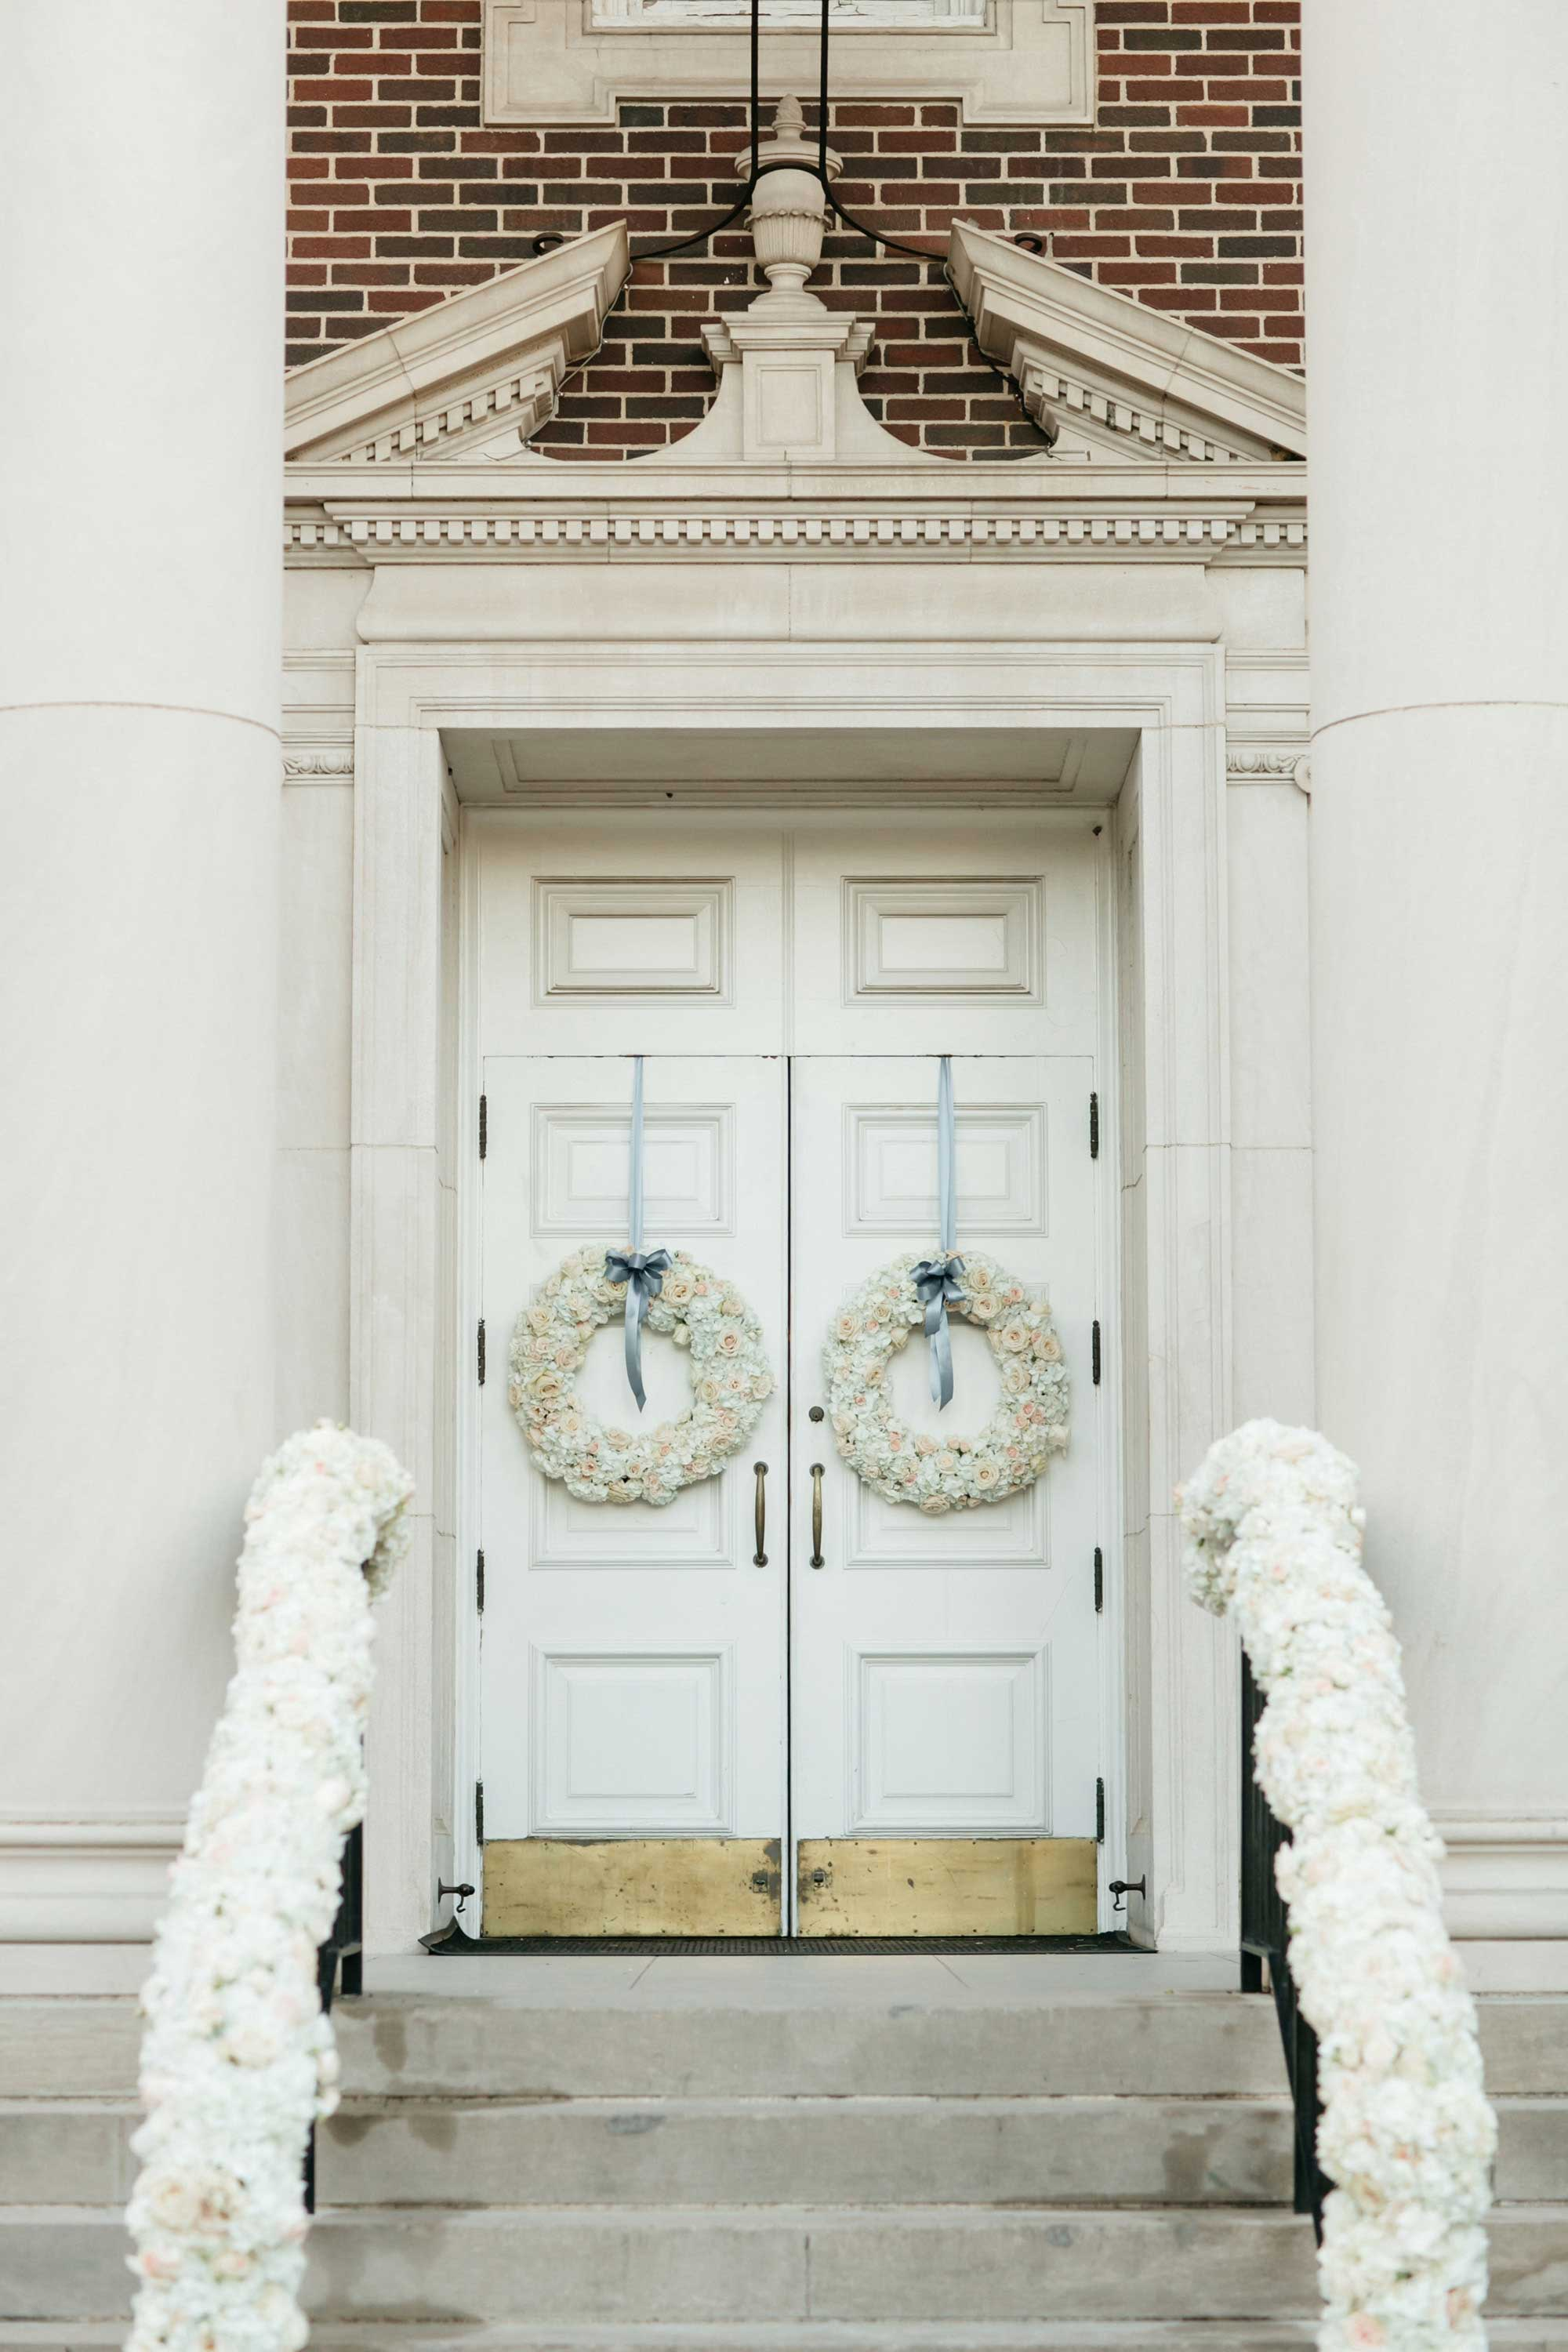 Wedding ceremony ideas 13 d cor ideas for a church for Wedding door decorating ideas